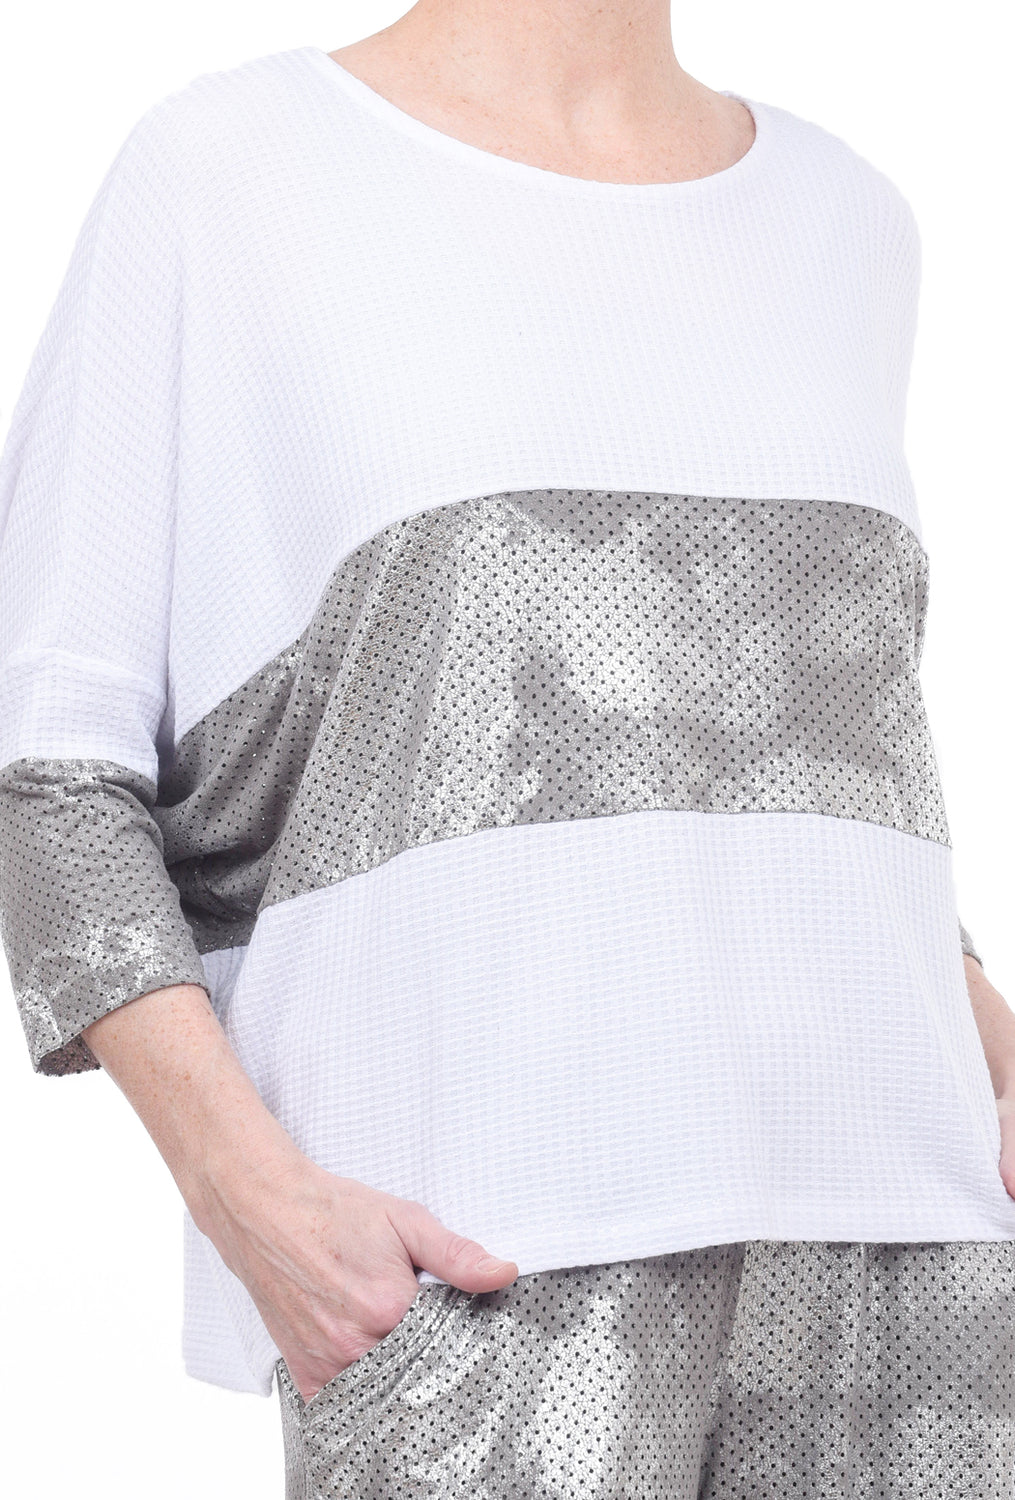 Alembika Perf Inset Waffle Top, White/Silver